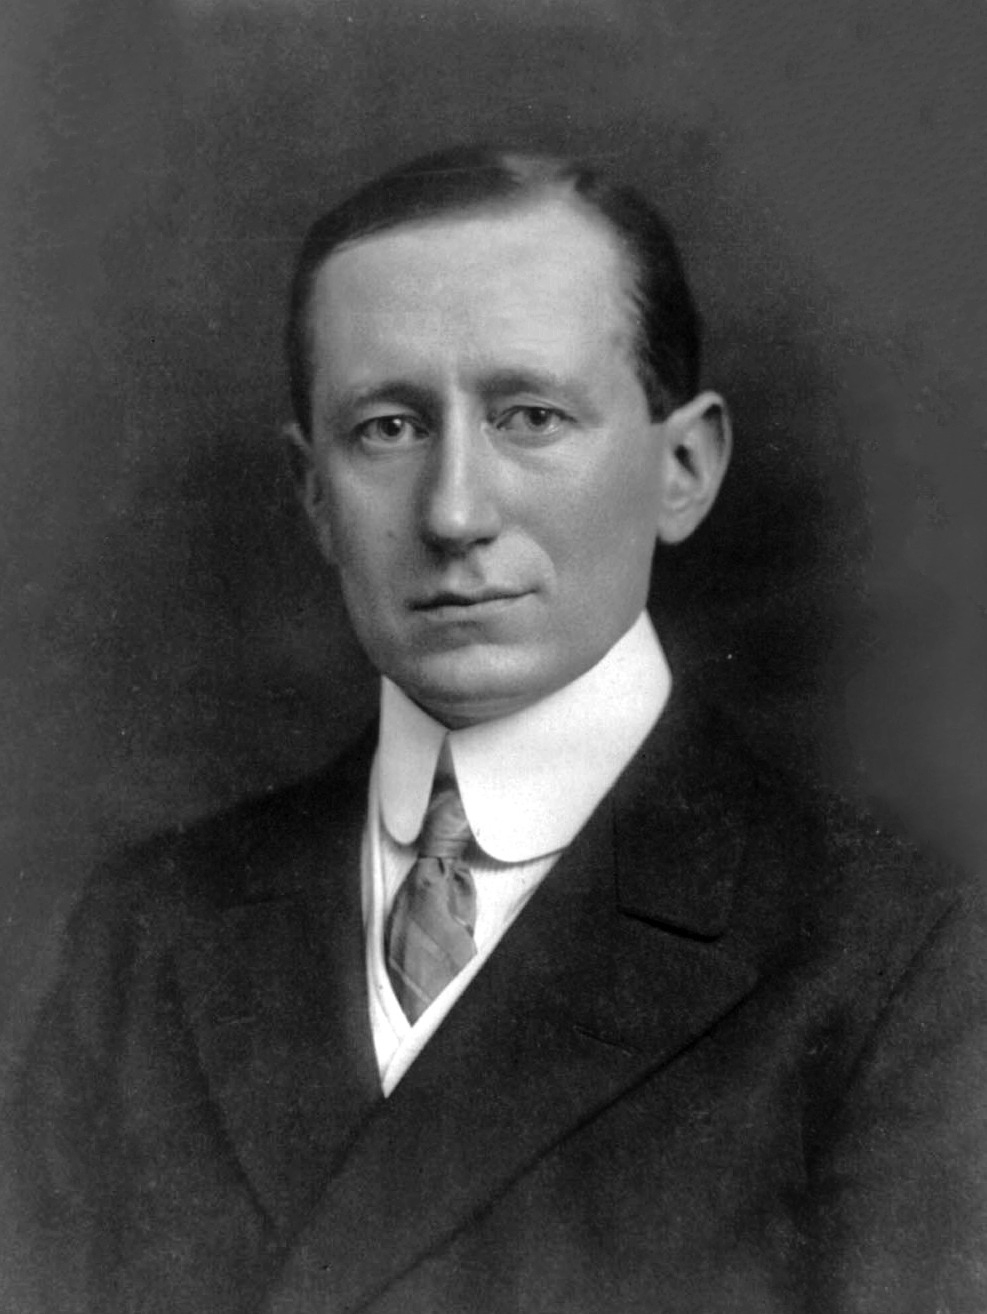 https://upload.wikimedia.org/wikipedia/commons/0/0d/Guglielmo_Marconi.jpg